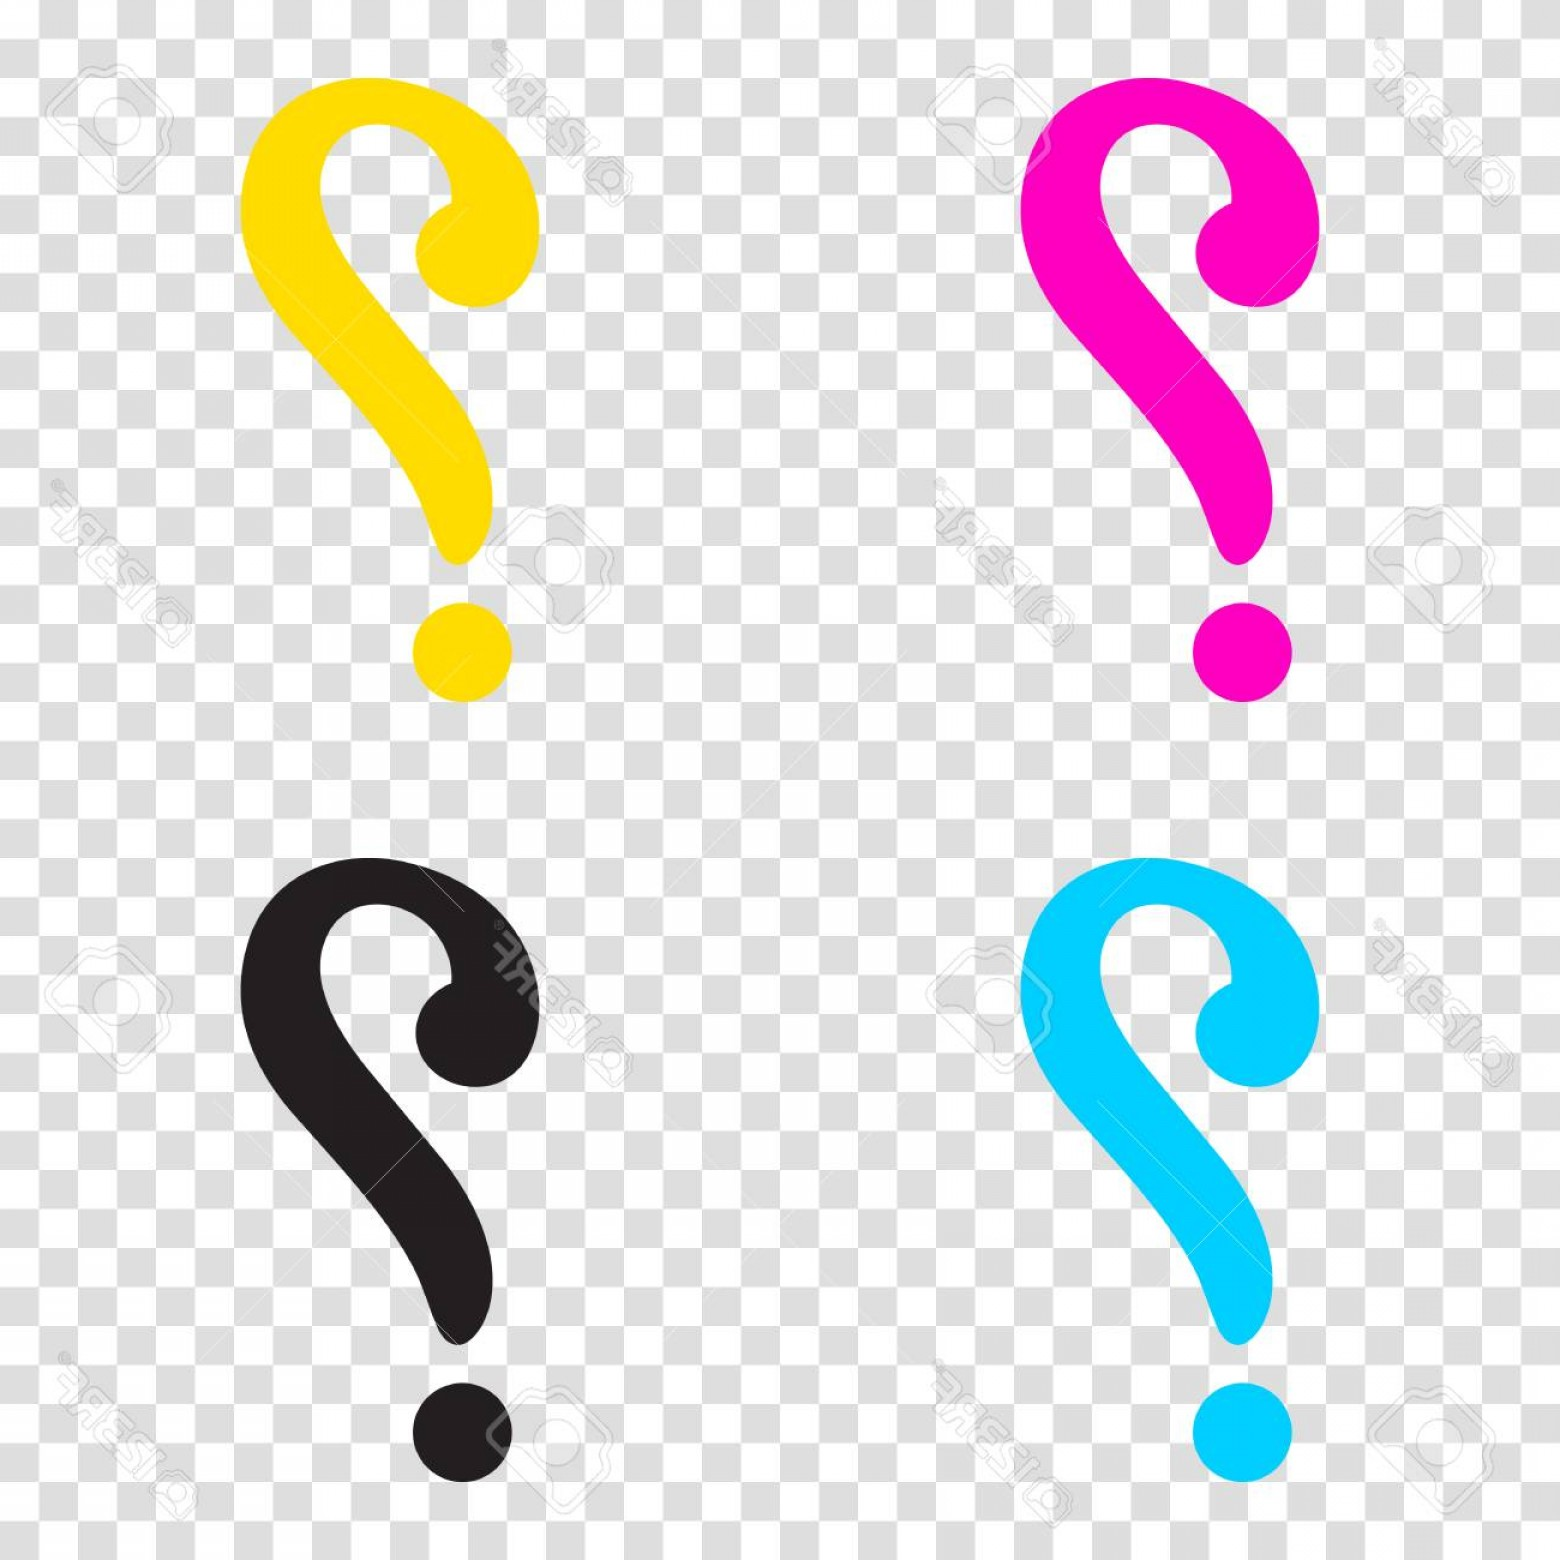 Photostock Vector Question Mark Sign Cmyk Icons On Transparent Background Cyan Magenta Yellow Key Black